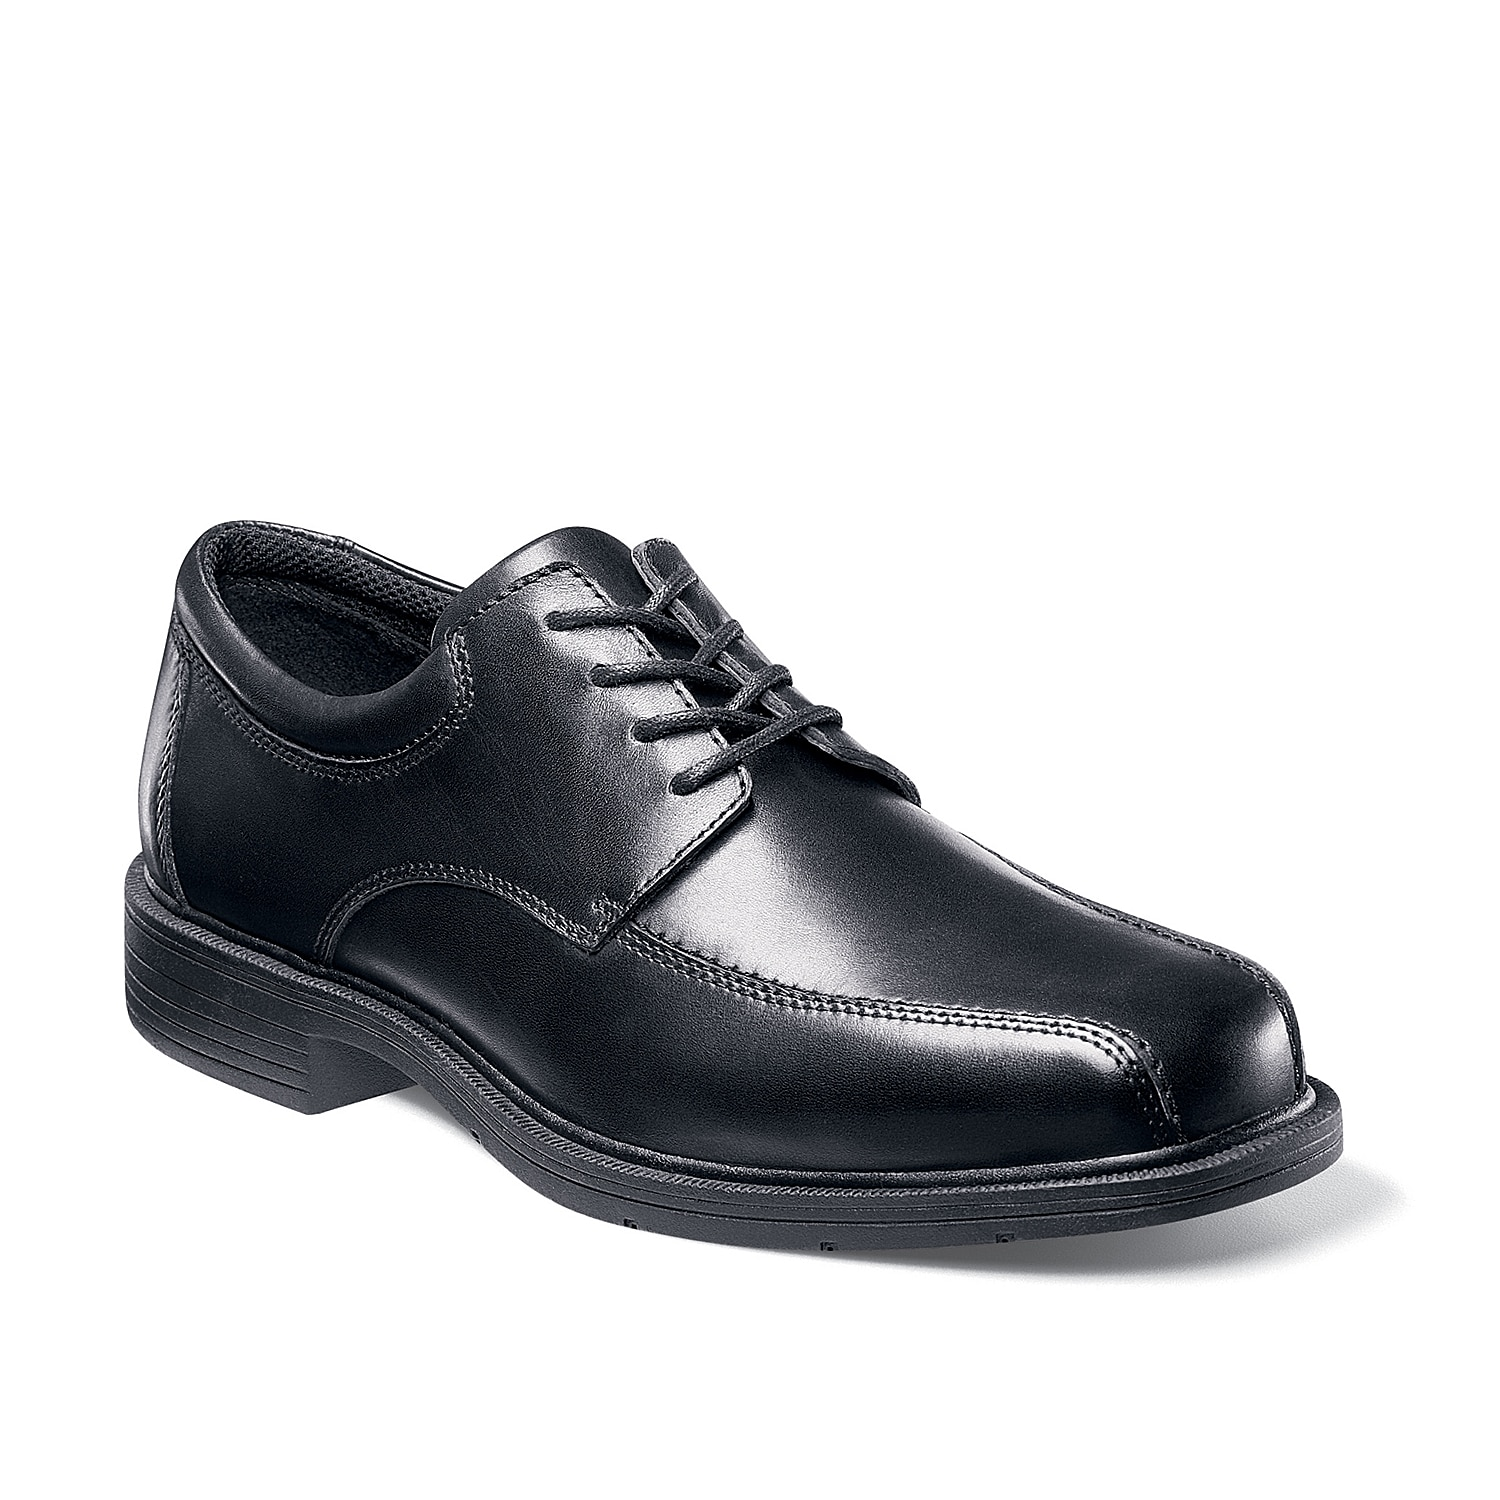 The perfect dress shoe for a long day at the office, the Jasen bike toe oxford from Nunn Bush features comfort and style.